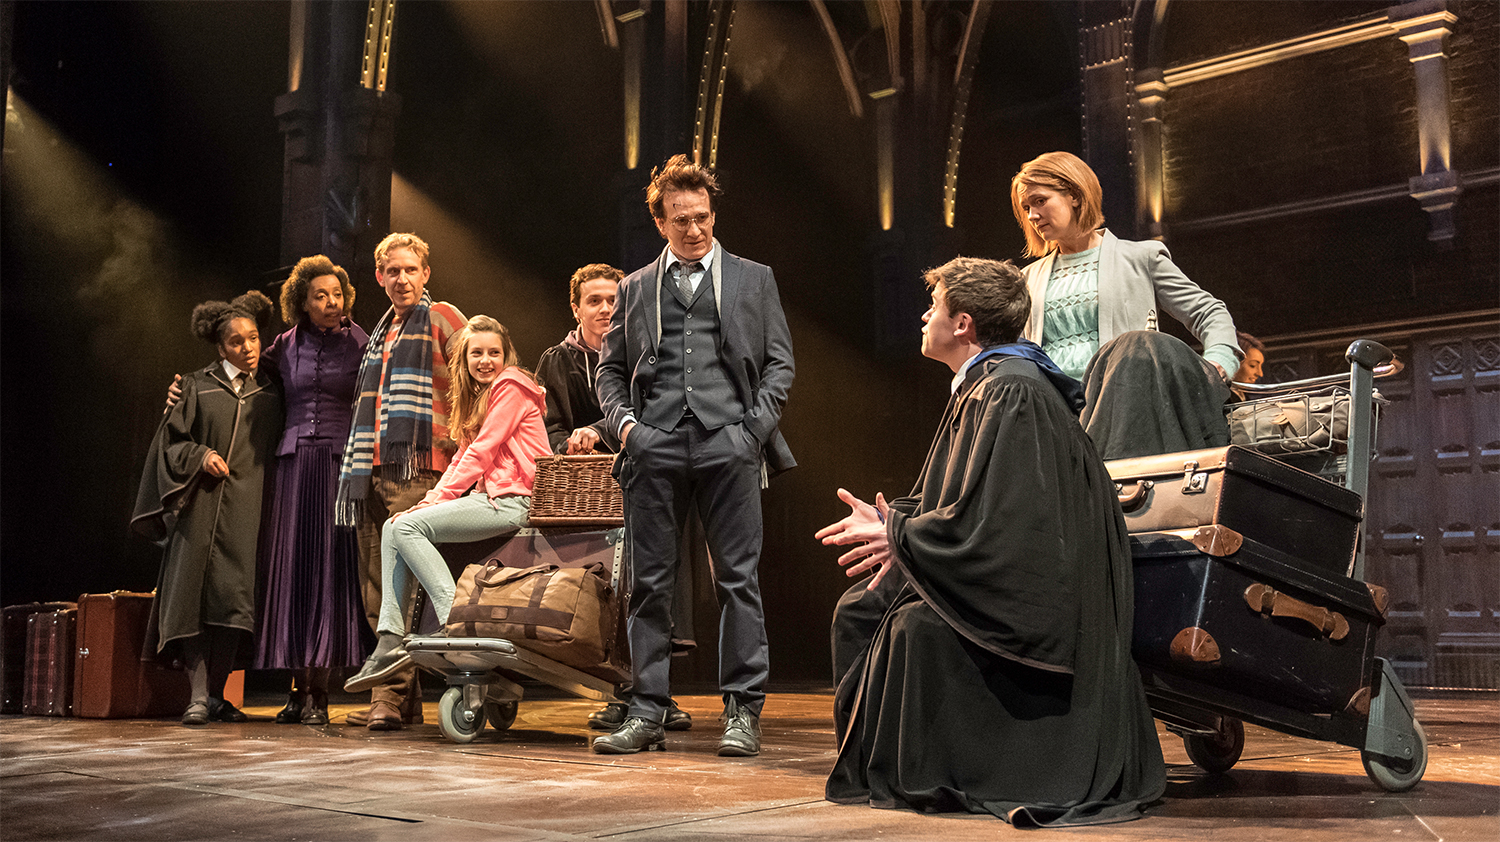 The main cast of Harry Potter and the Cursed Child, a notable nerd theatre show